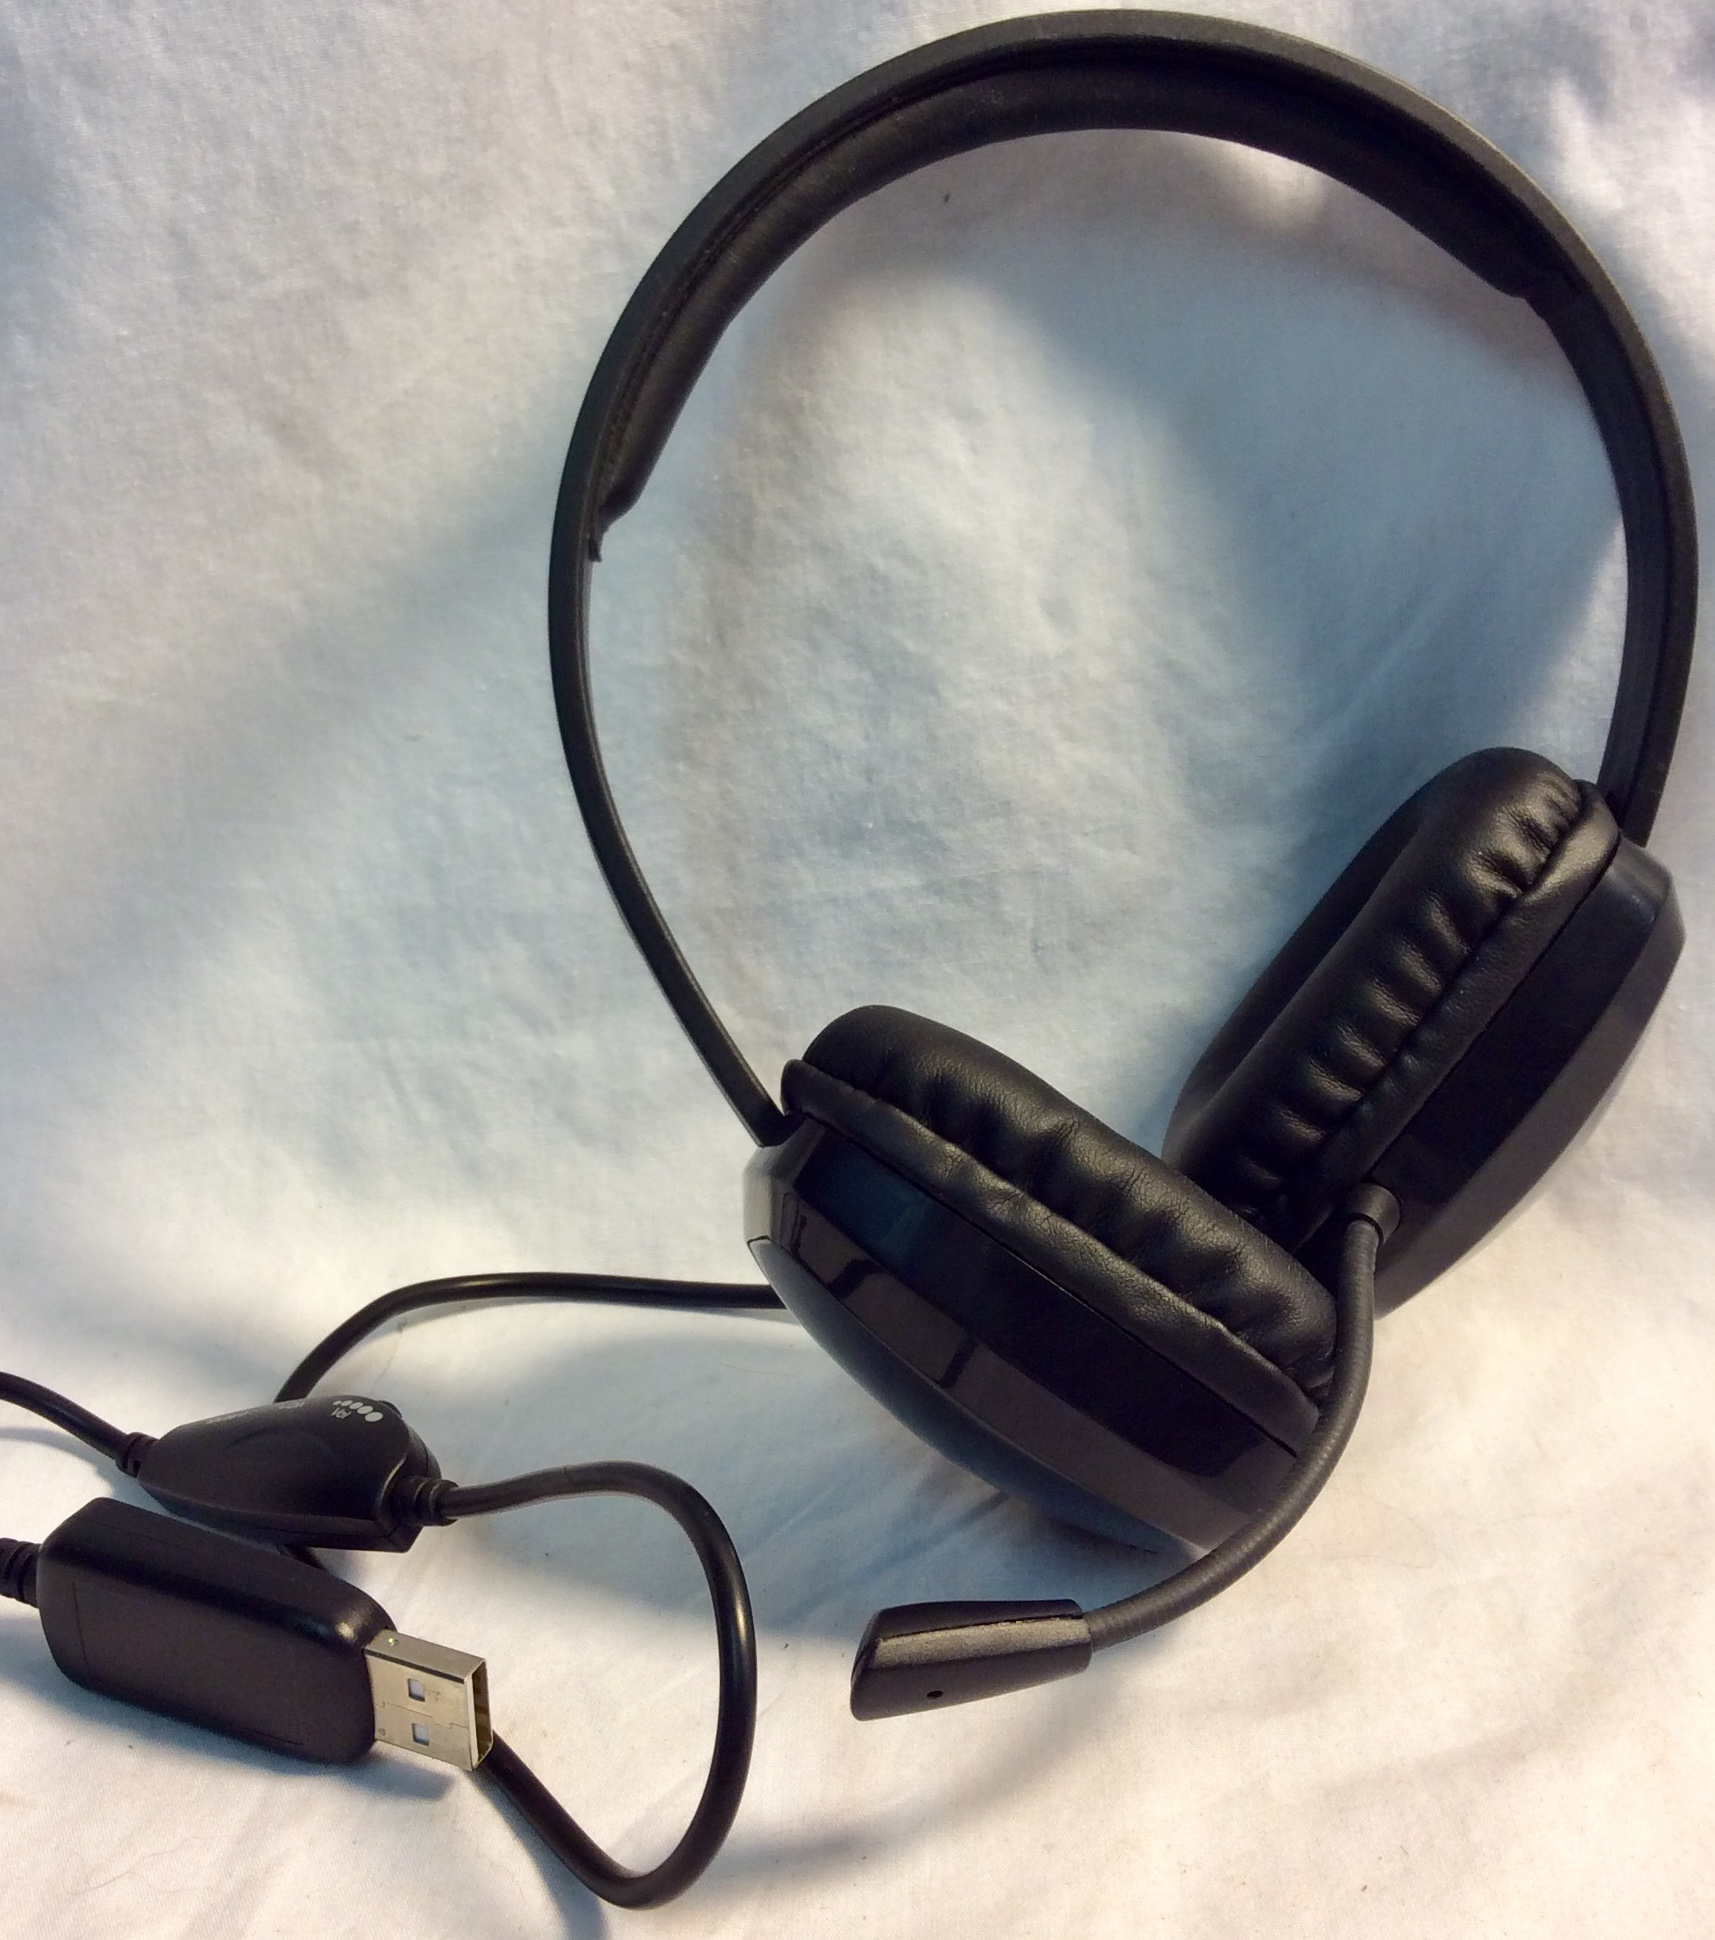 Broadcast headsets with USB connection and volume control